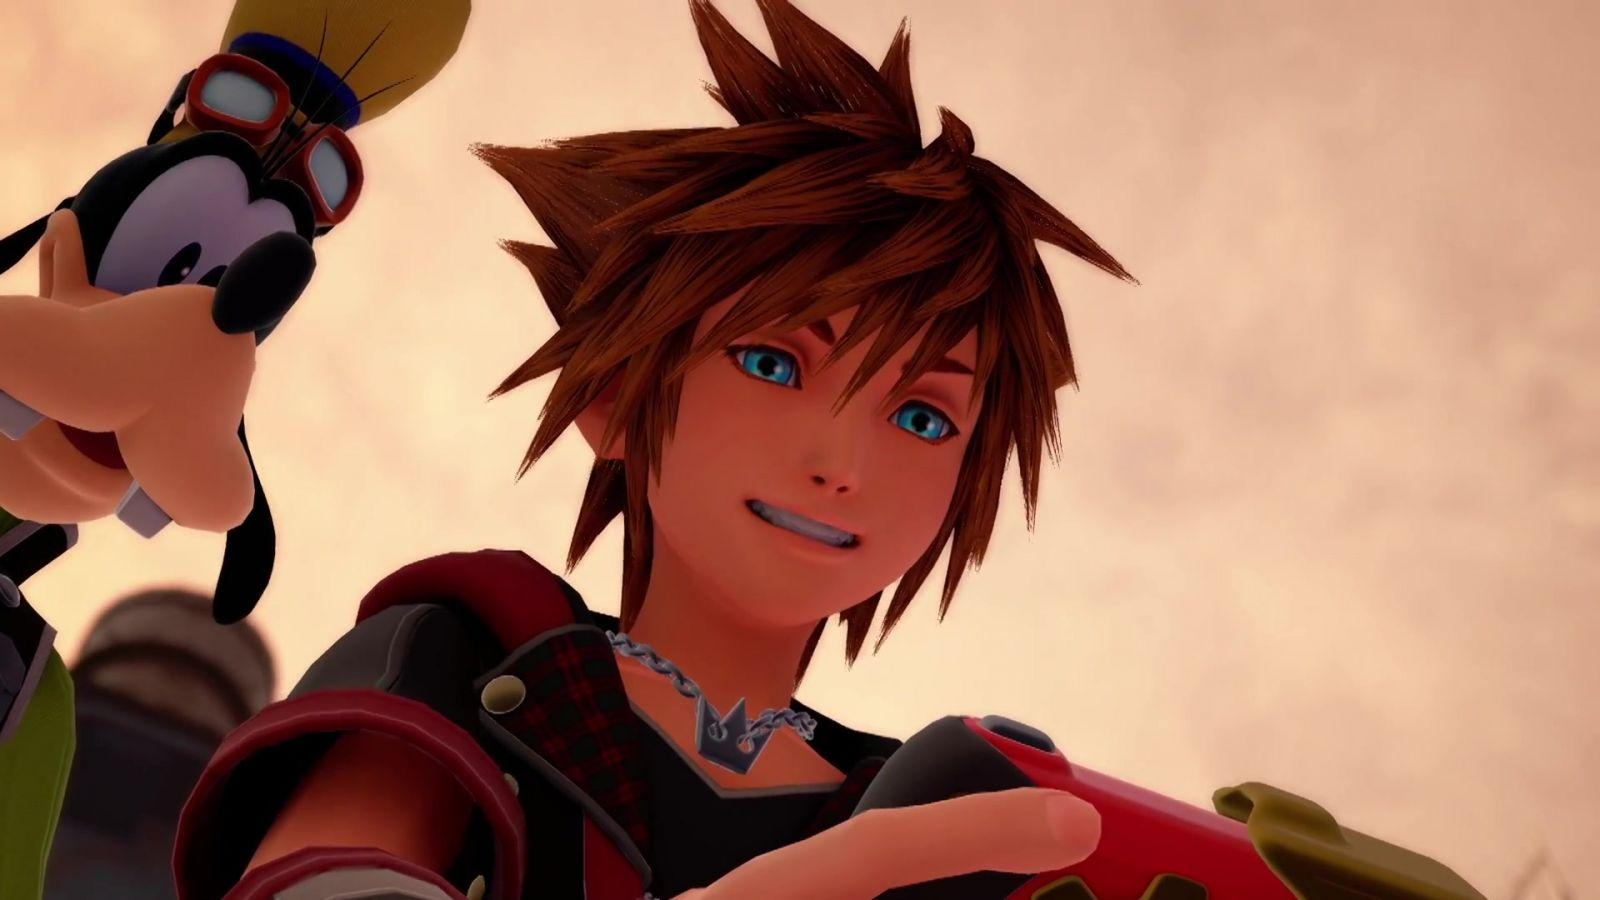 KINGDOM HEARTS III - CLASSIC KINGDOM Trailer 1653.jpg